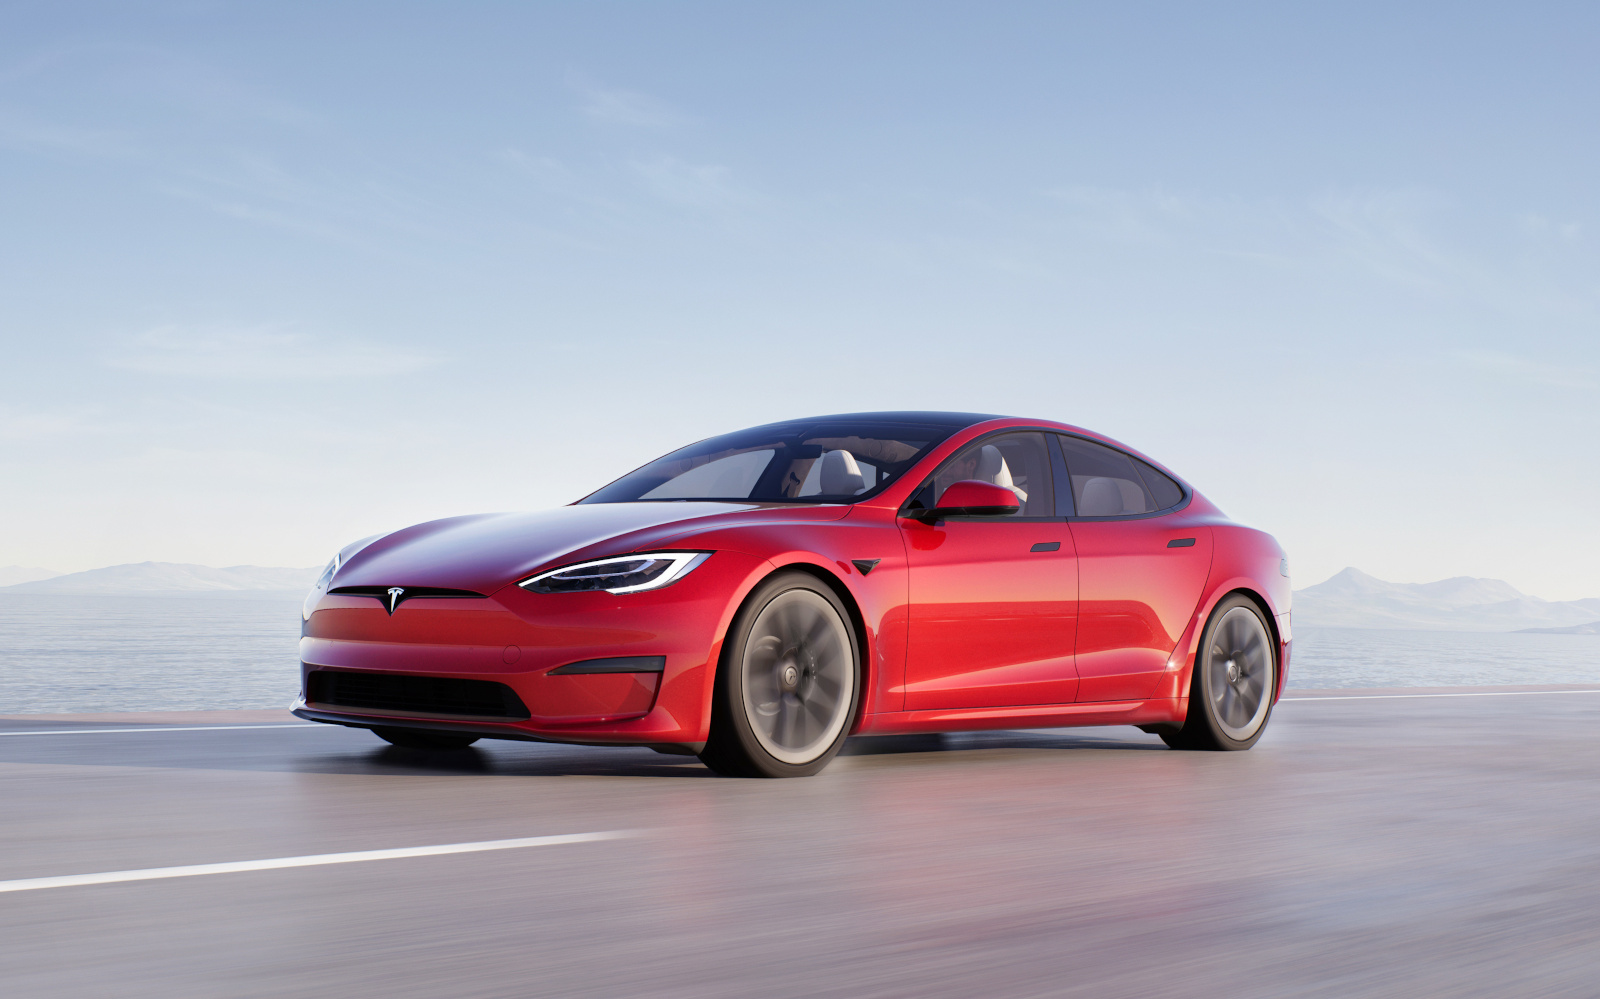 Tesla will pay $1.5 million to settle Model S battery throttling complaints | Engadget